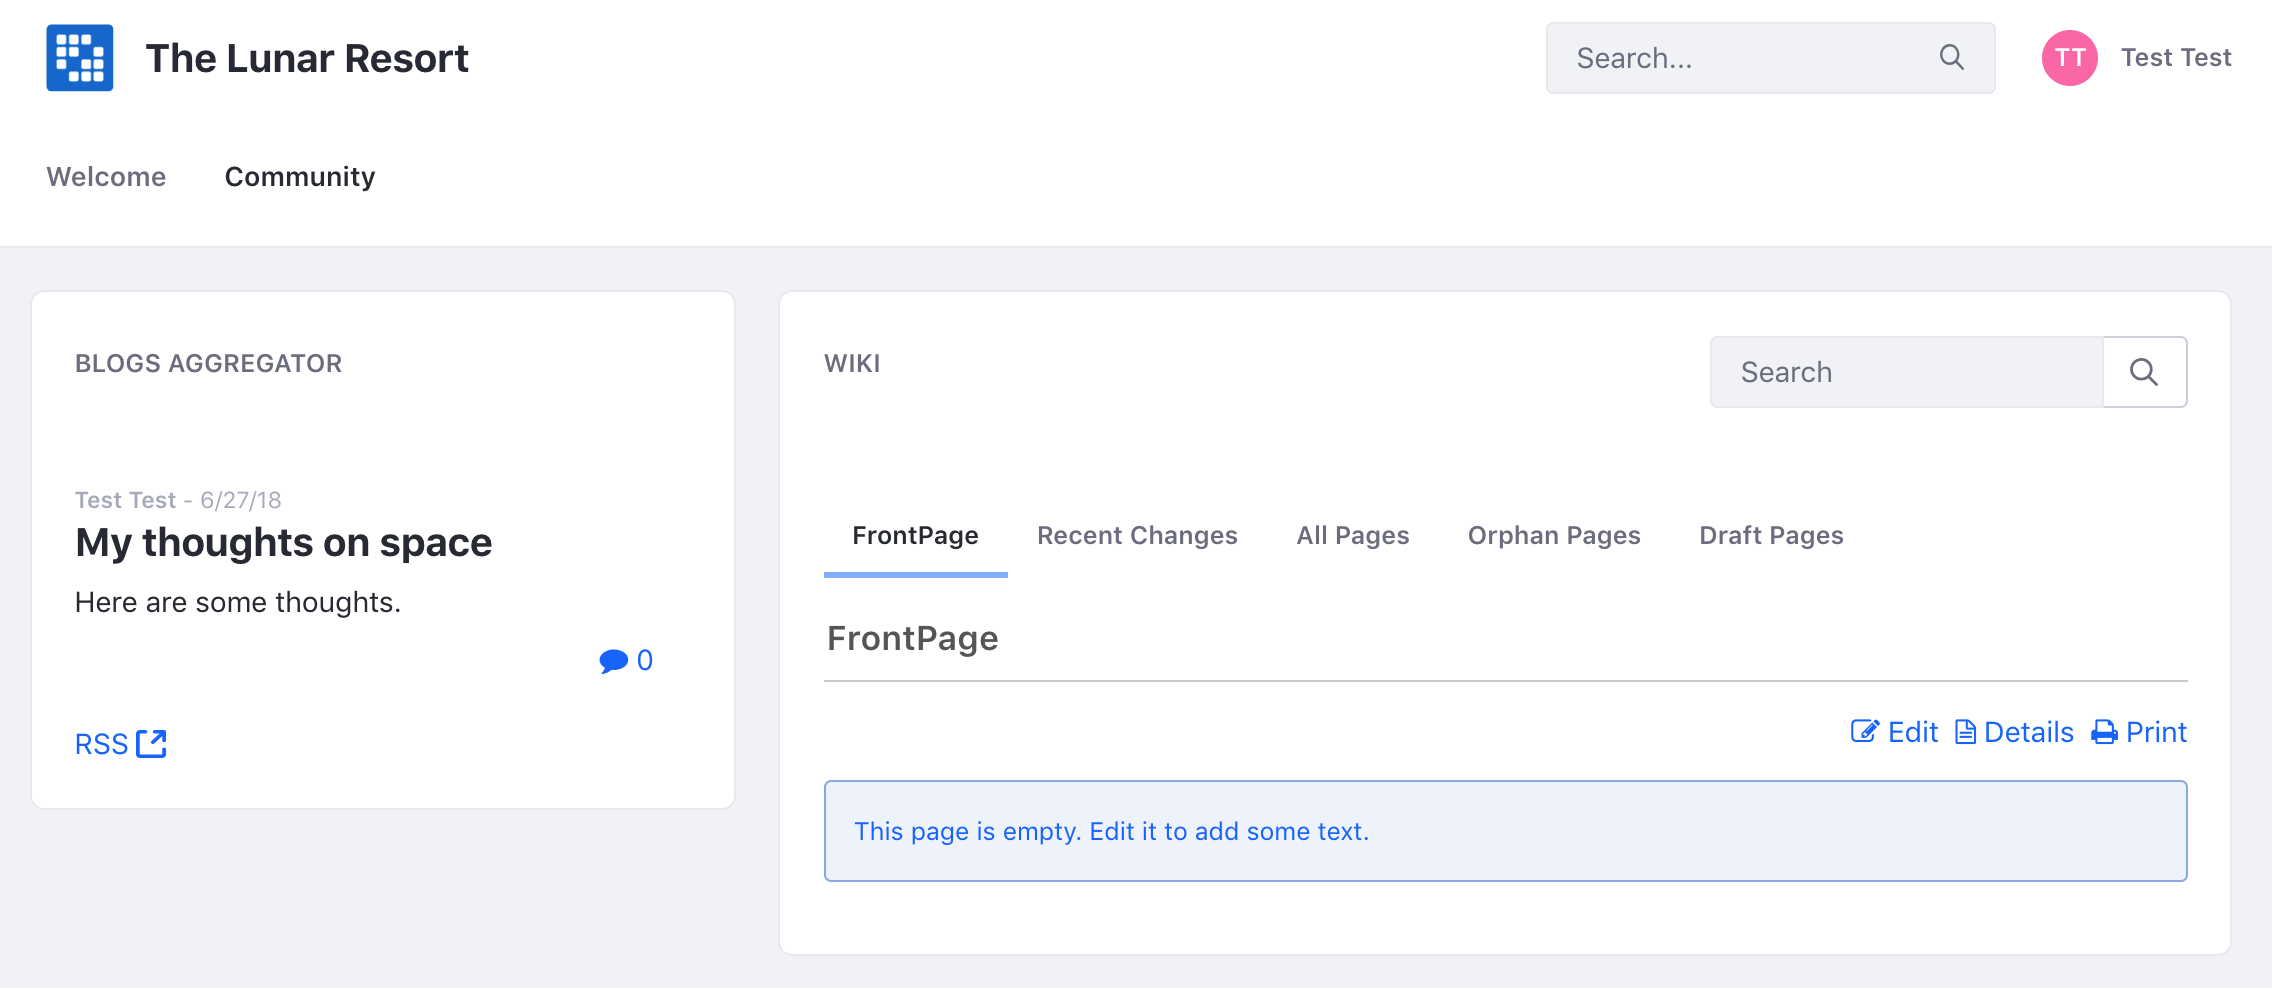 Figure 3: Your page layout options are virtually limitless with a slew of application and layout combinations.